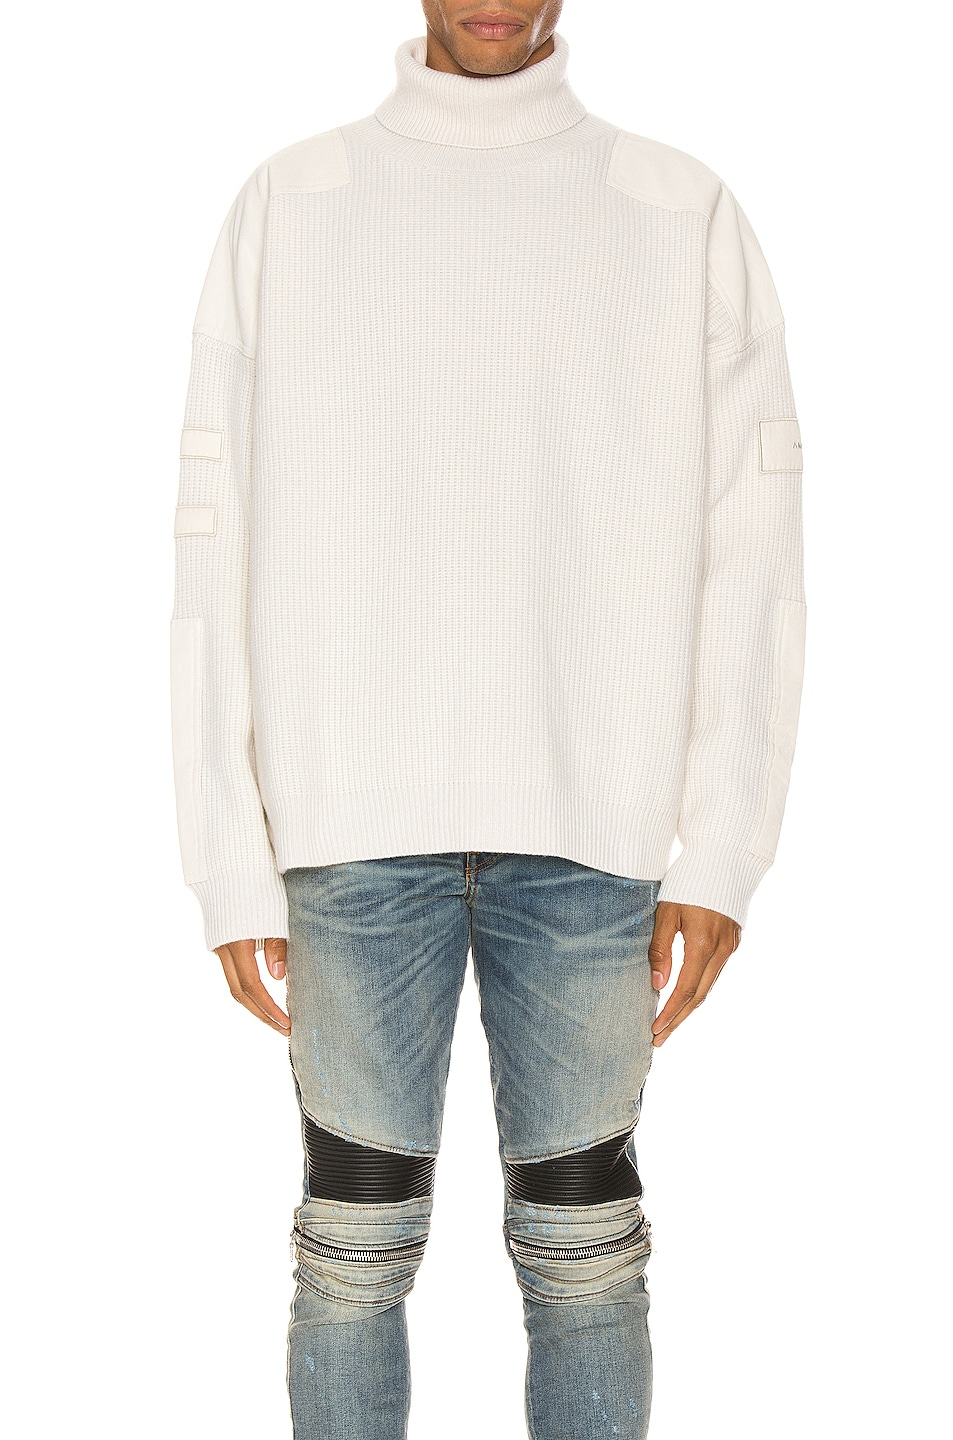 Amiri Tops Military Patch Turtleneck